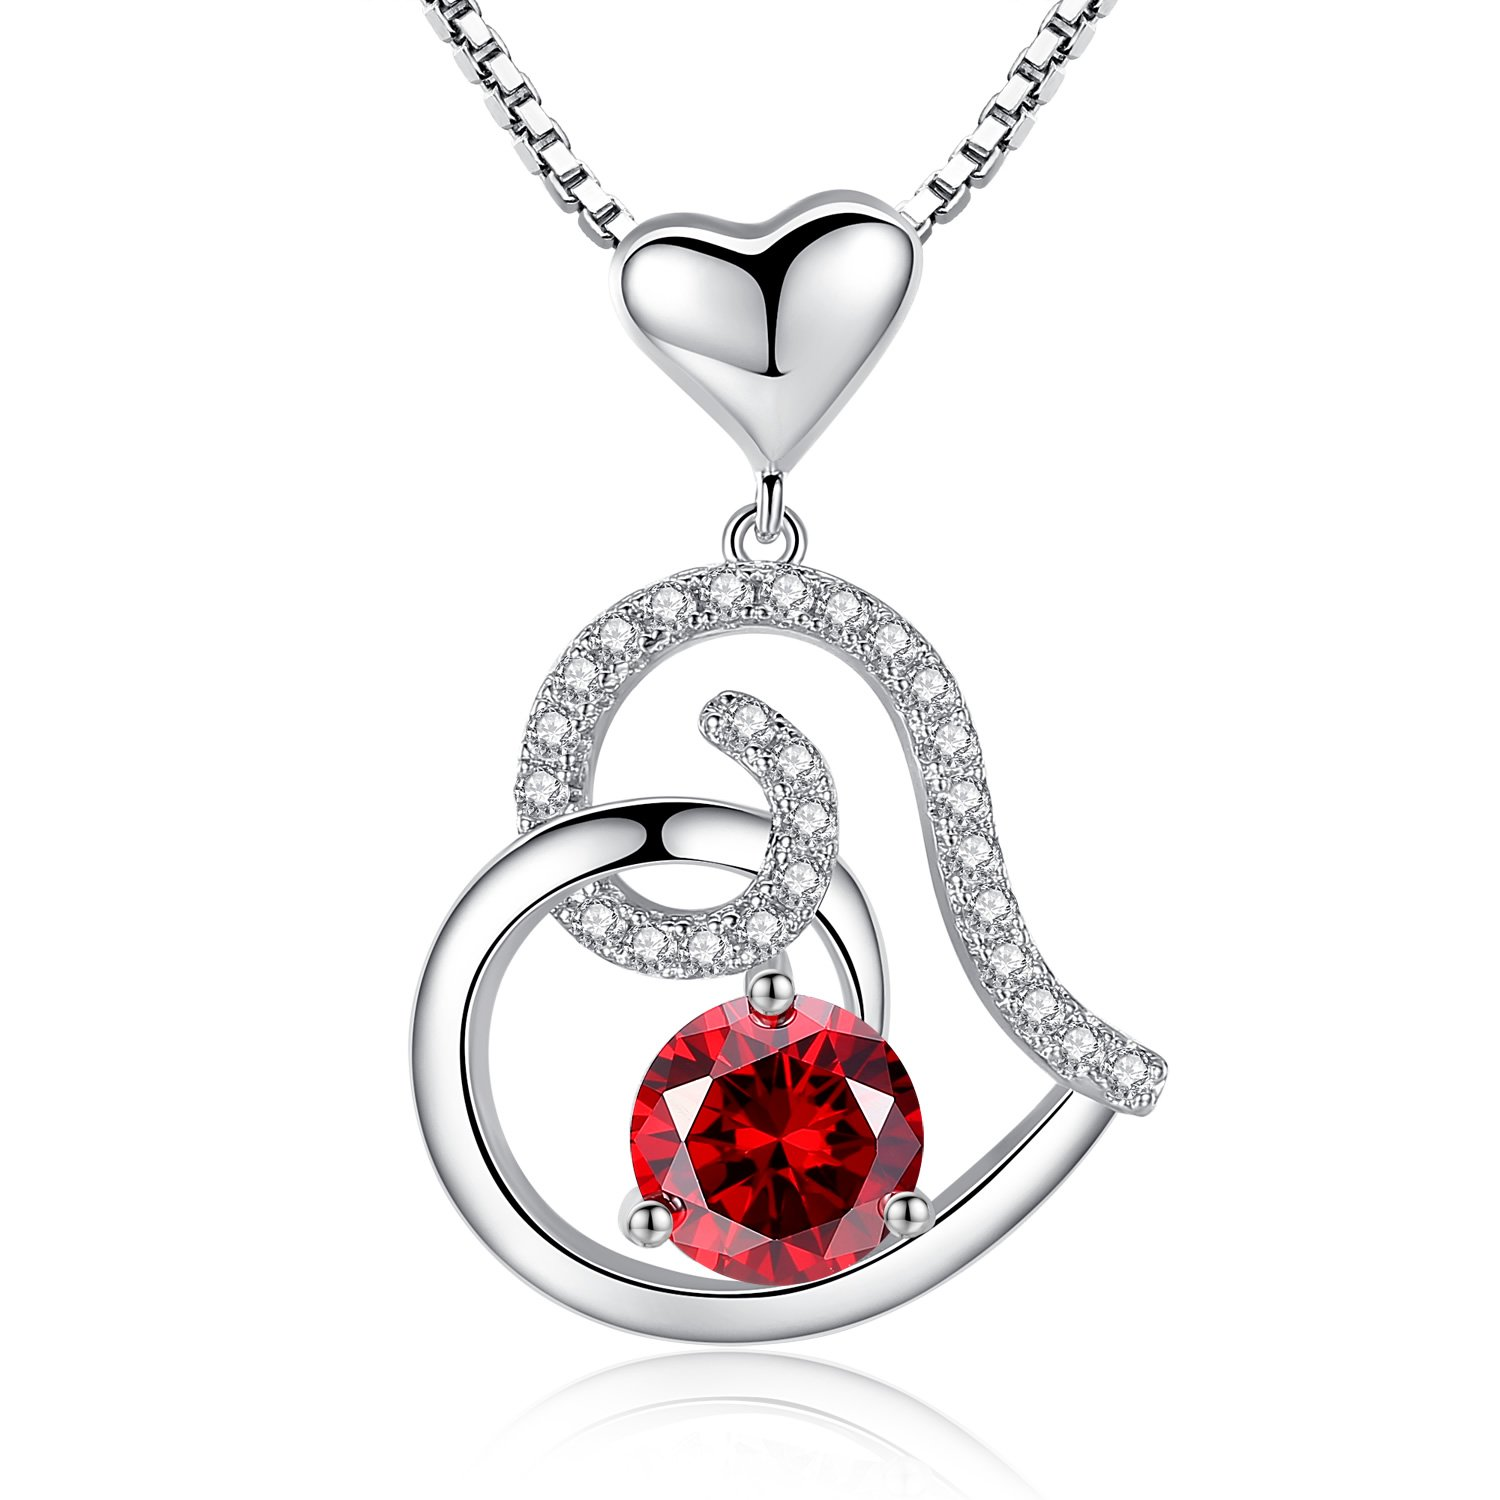 Garnet January Birthstone Necklace, Ladies Birthday Necklace Gifts, Love Heart Cubic Zirconia CZ Pendant Necklace, Jewelry for Women, Girls, Friendship, Wife, Mom, Mother, Her, Anniversary Gift